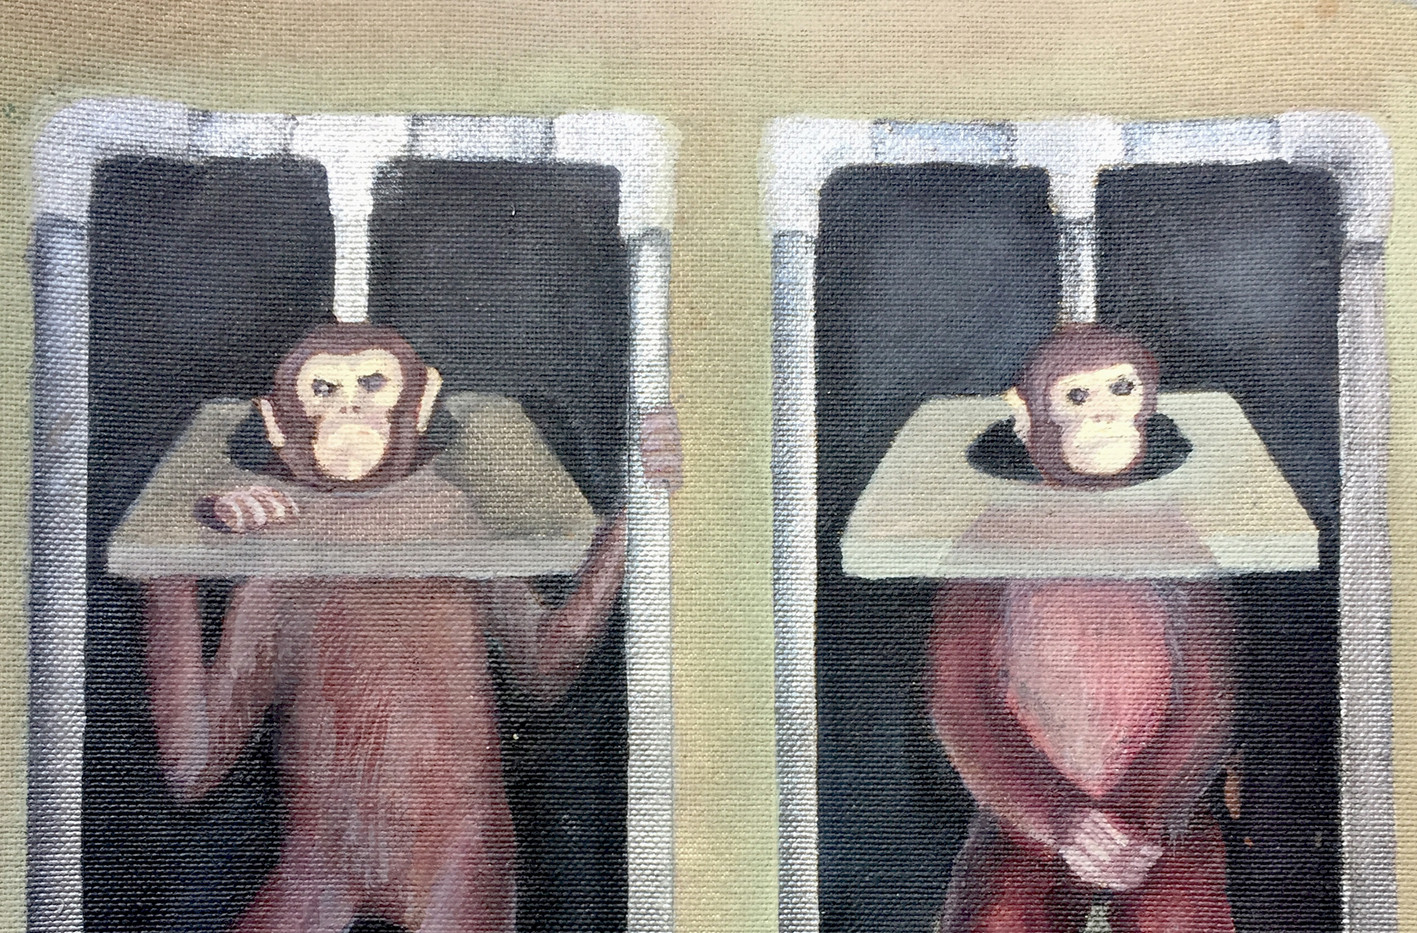 Monkeys in Lab22.jpg